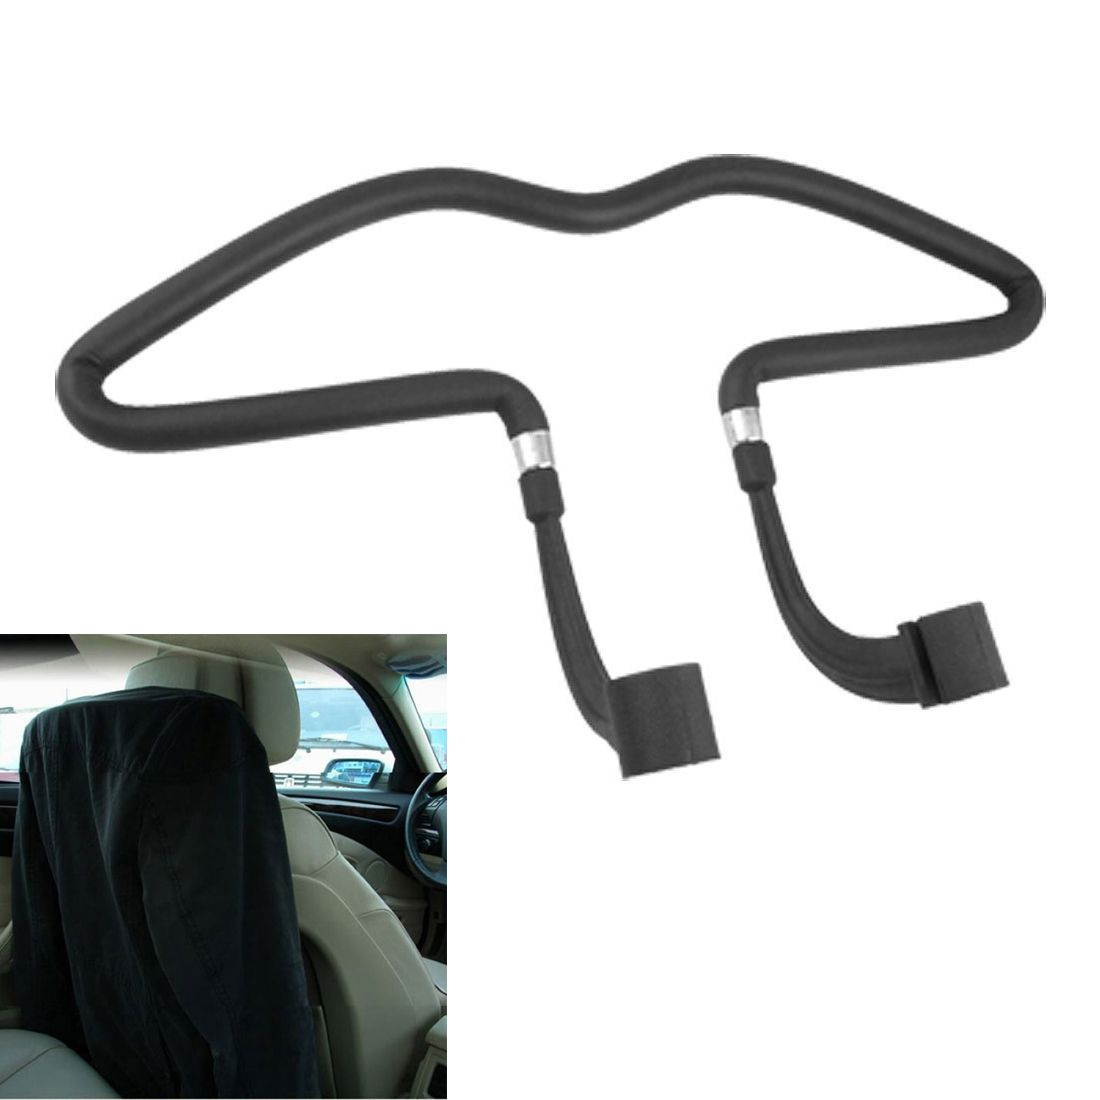 TOYL Auto Car Seat Hanger Holder Hooks Clips For Bag Purse Cloth Grocery Automobile Interior Accessories xmas